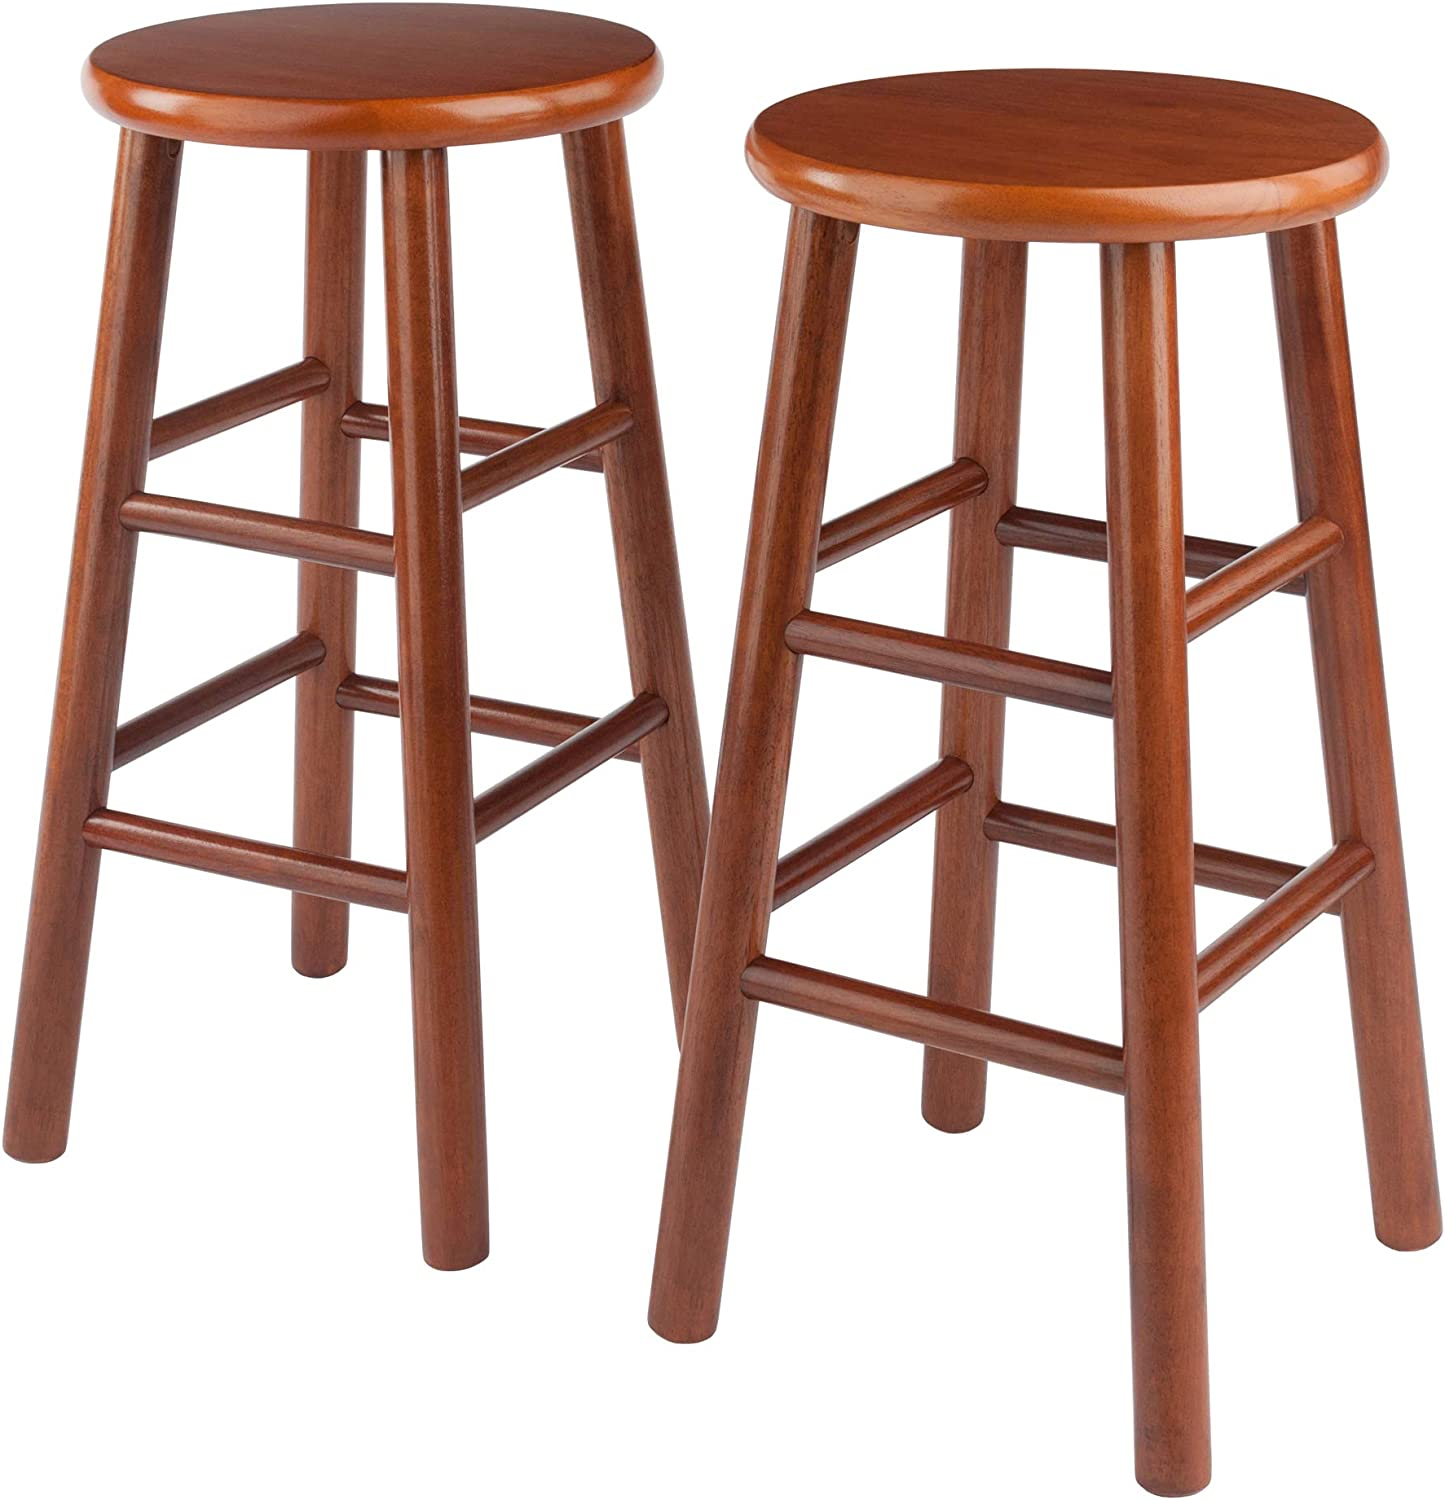 Winsome Wood Tabby Stool 24 Inch Cherry Furniture Decor